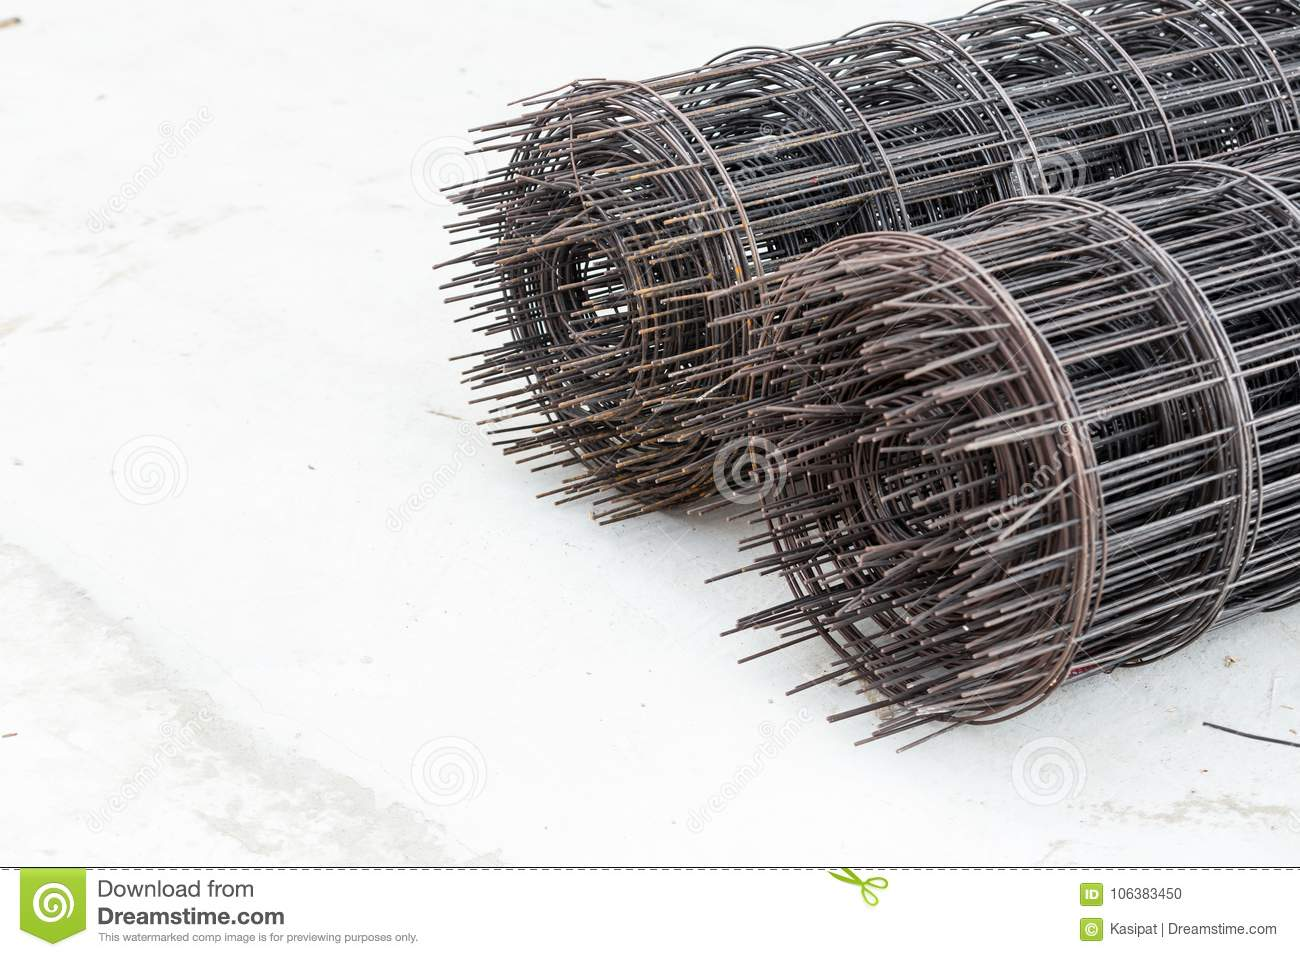 Wire mesh stock photo. Image of circle, abstract, business - 106383450